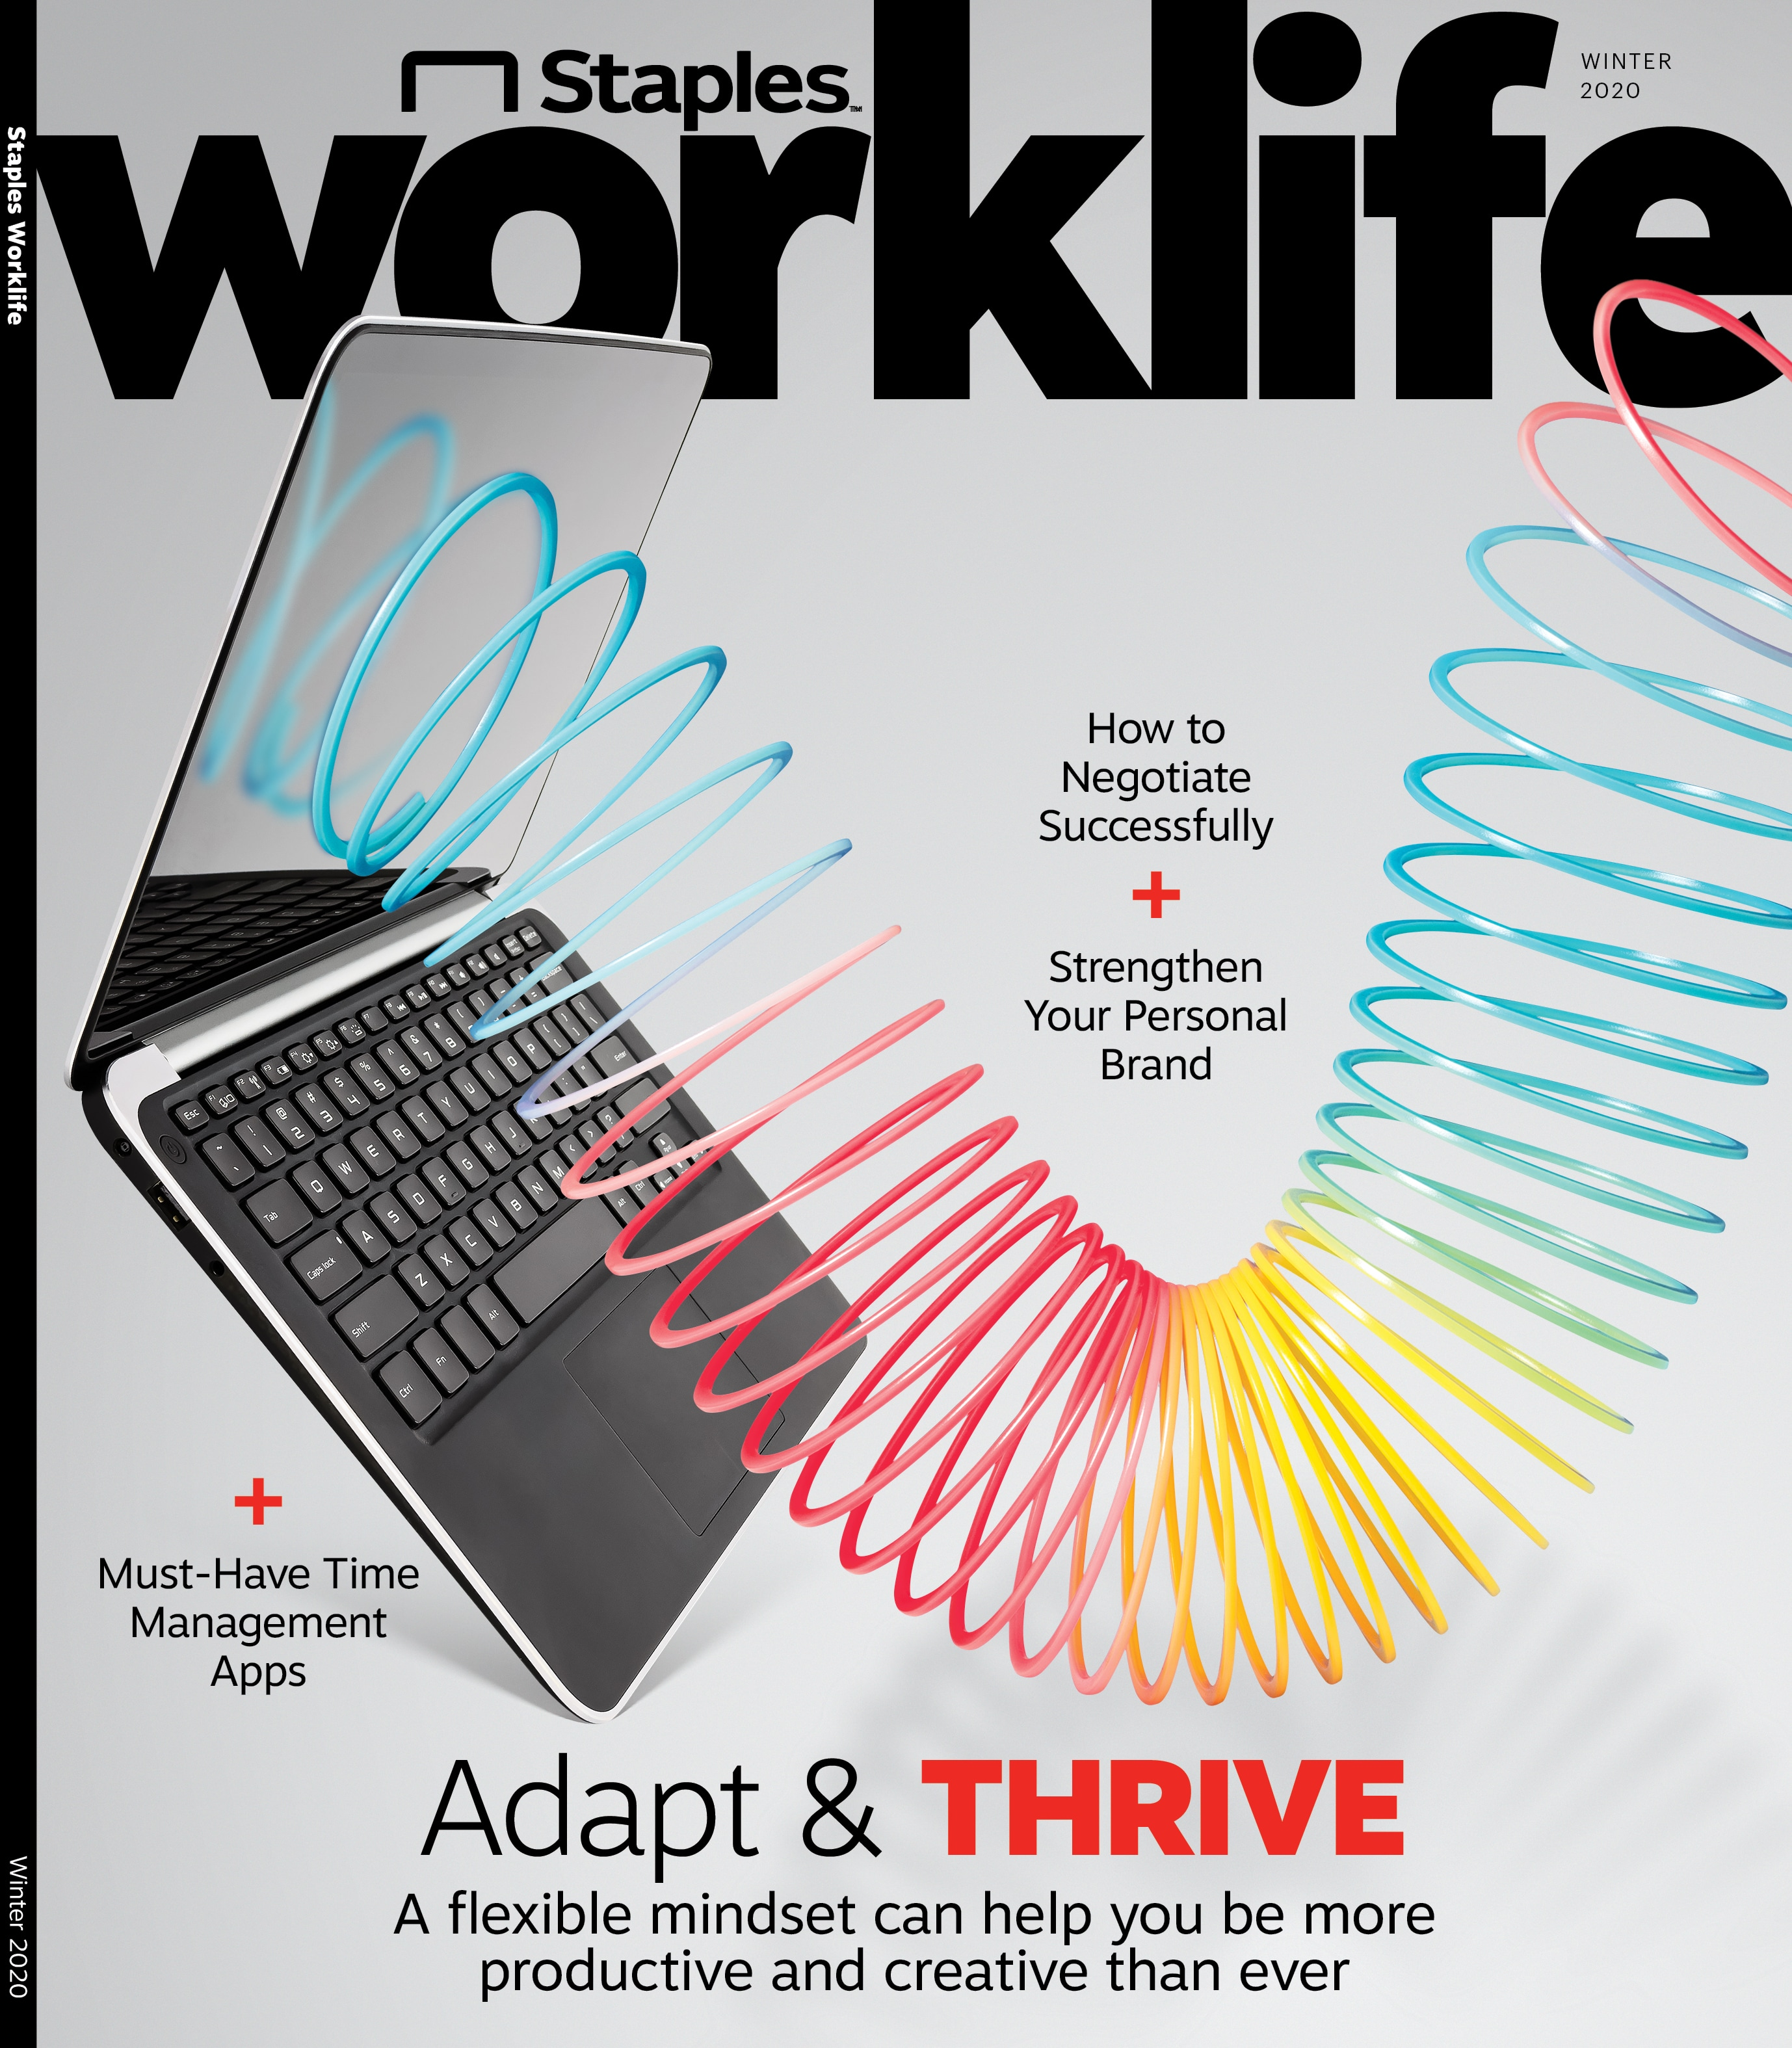 The Latest Issue of Staples Worklife.